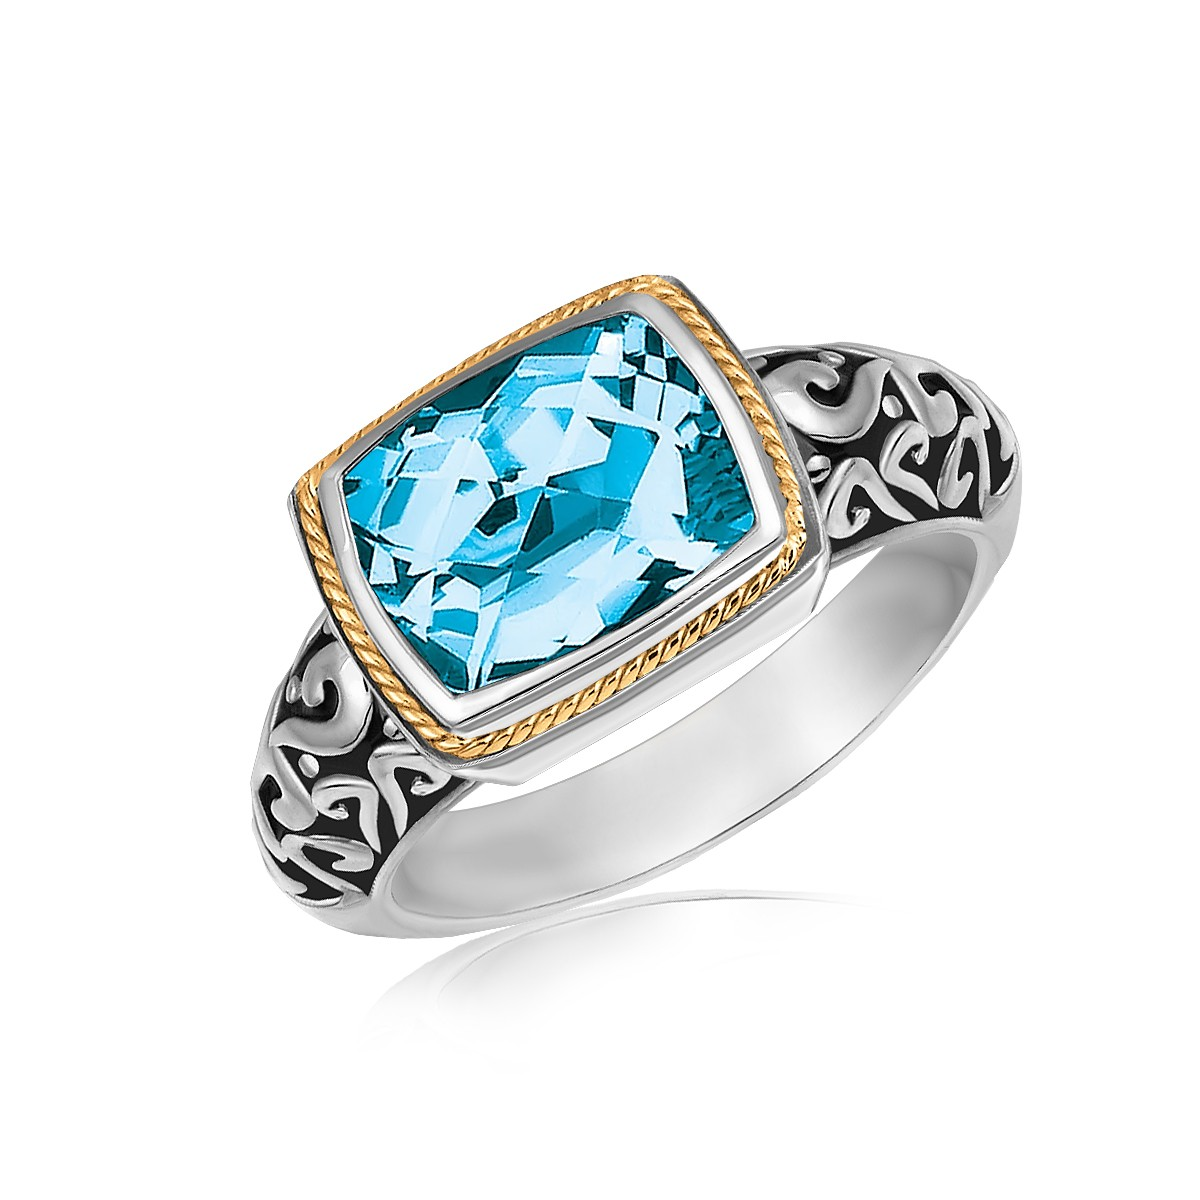 Risque Chalet 18K Yellow Gold and Sterling Silver Rectangular Blue Topaz Milgrained Ring at Sears.com